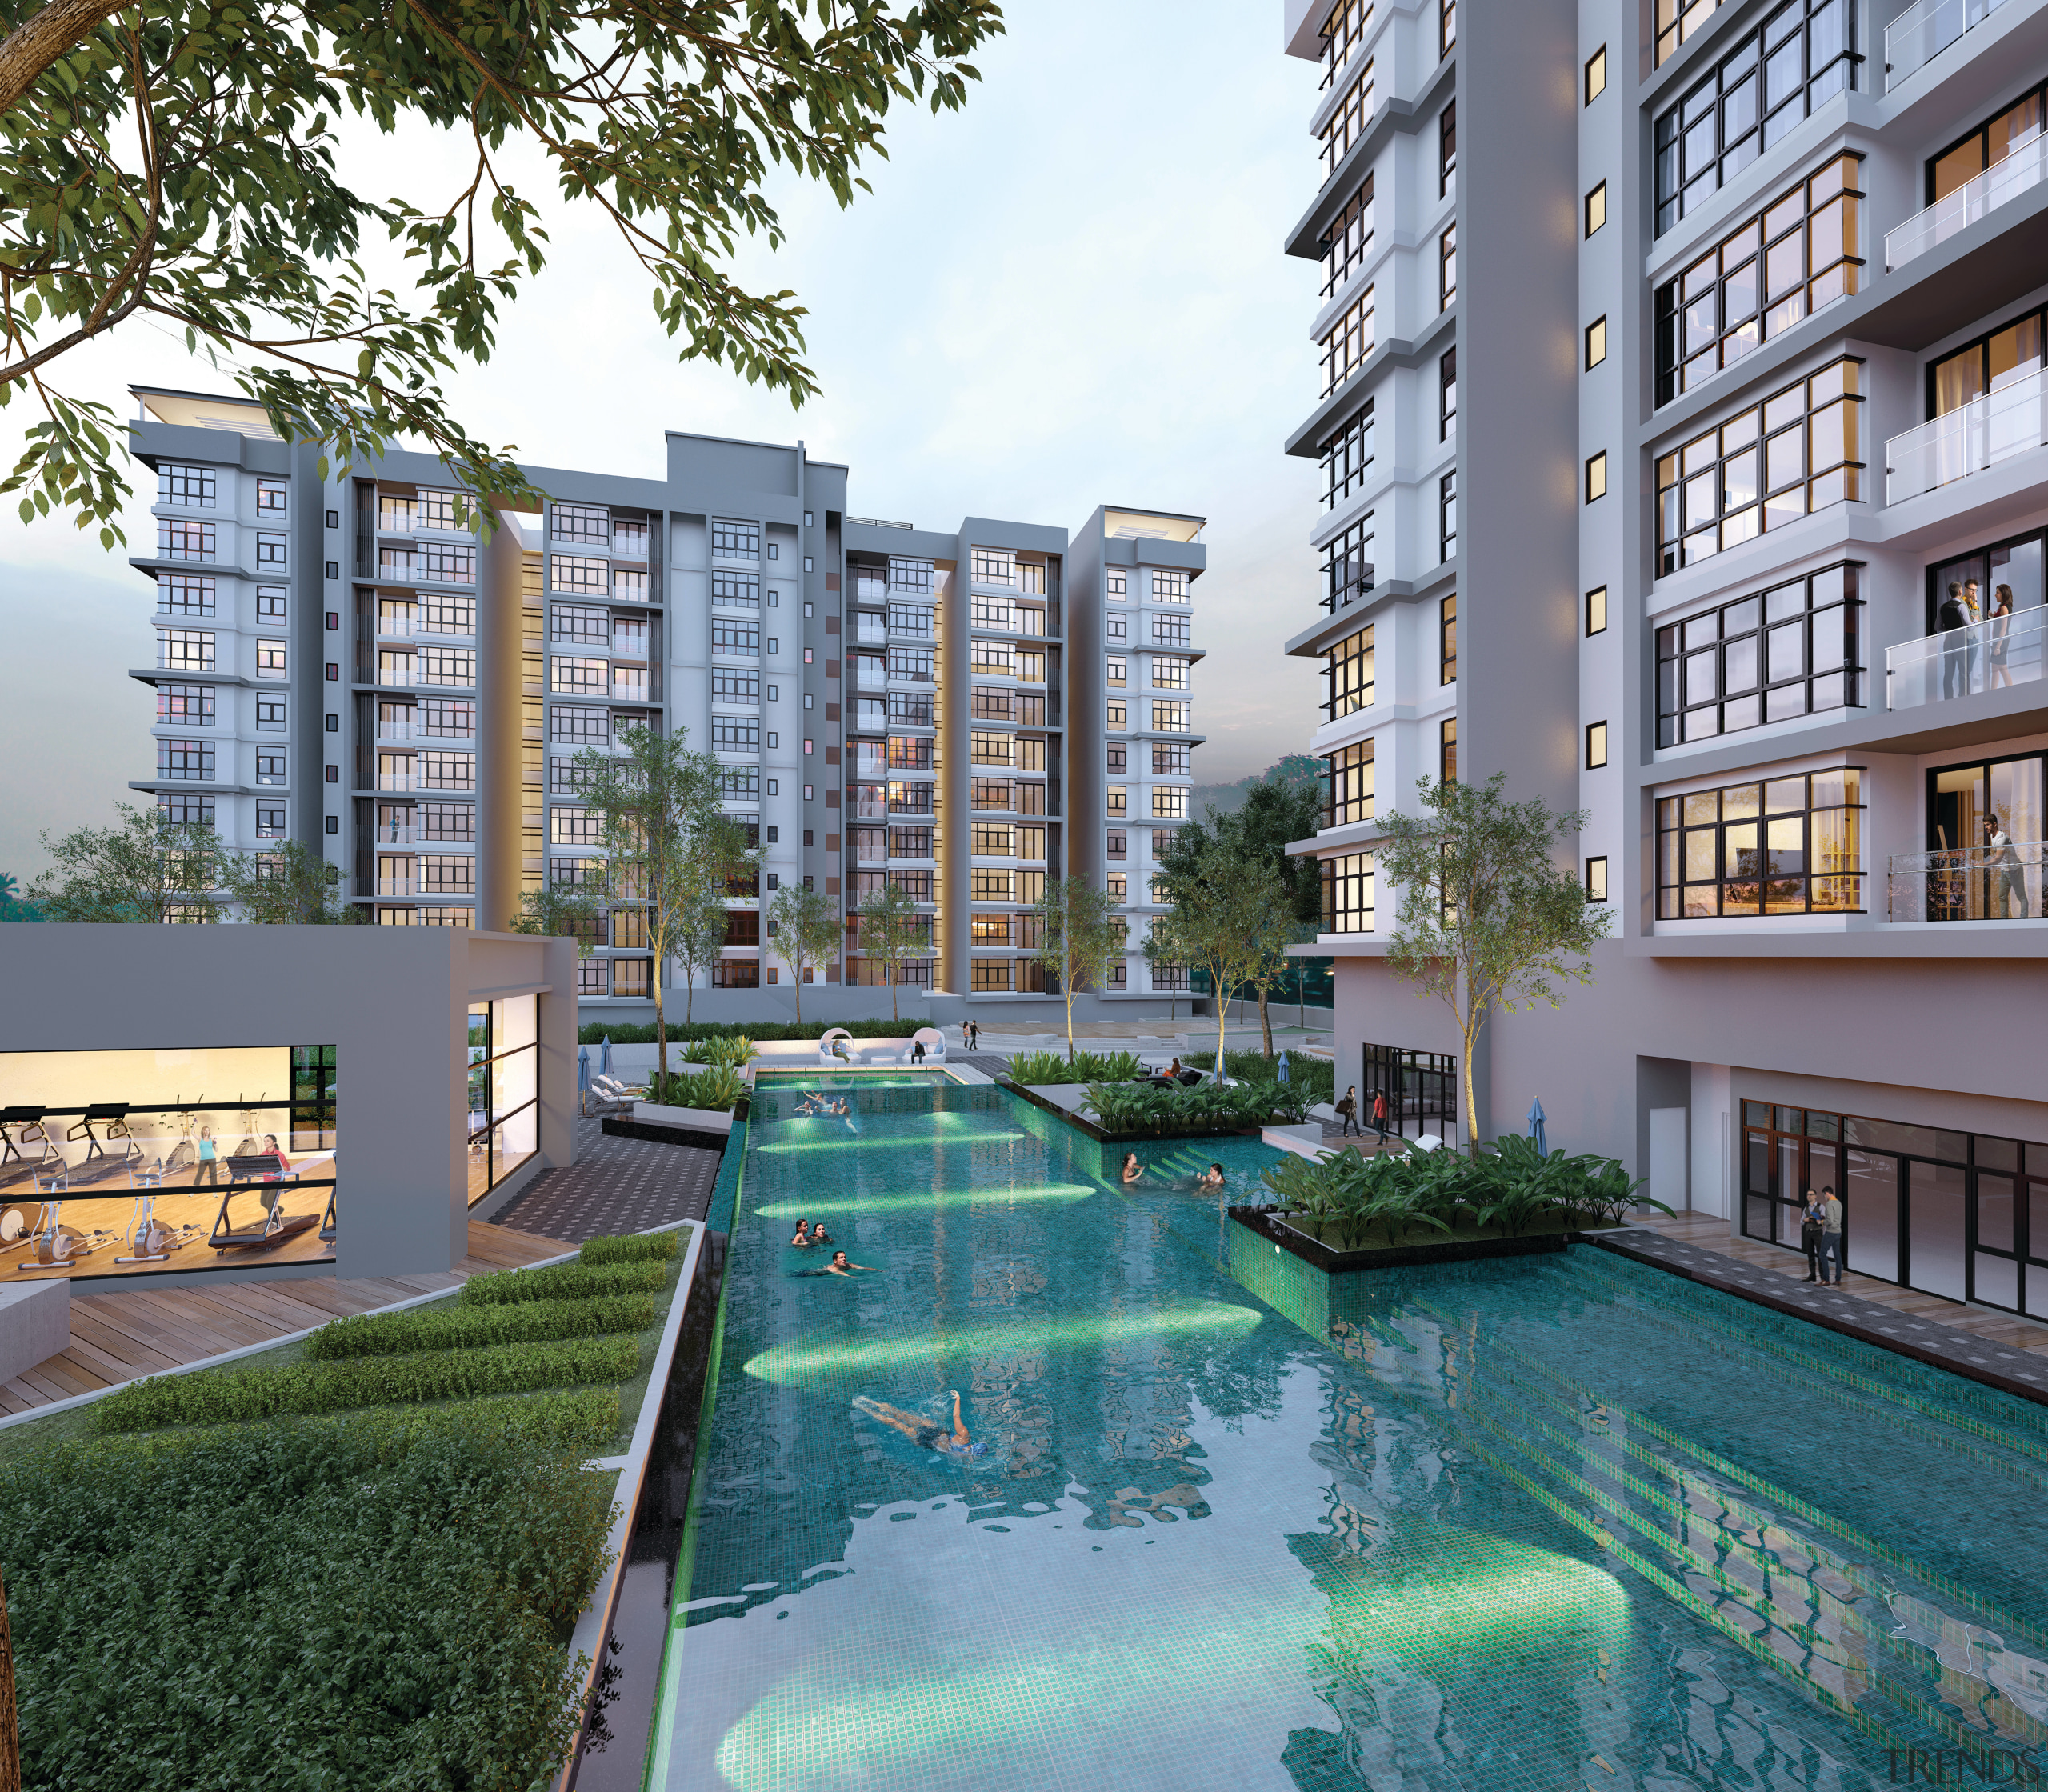 Lifestyle amenities for owners of the serviced apartments apartment, architecture, building, condominium, estate, metropolitan area, mixed use, neighbourhood, property, real estate, reflection, residential area, swimming pool, tower block, urban design, gray